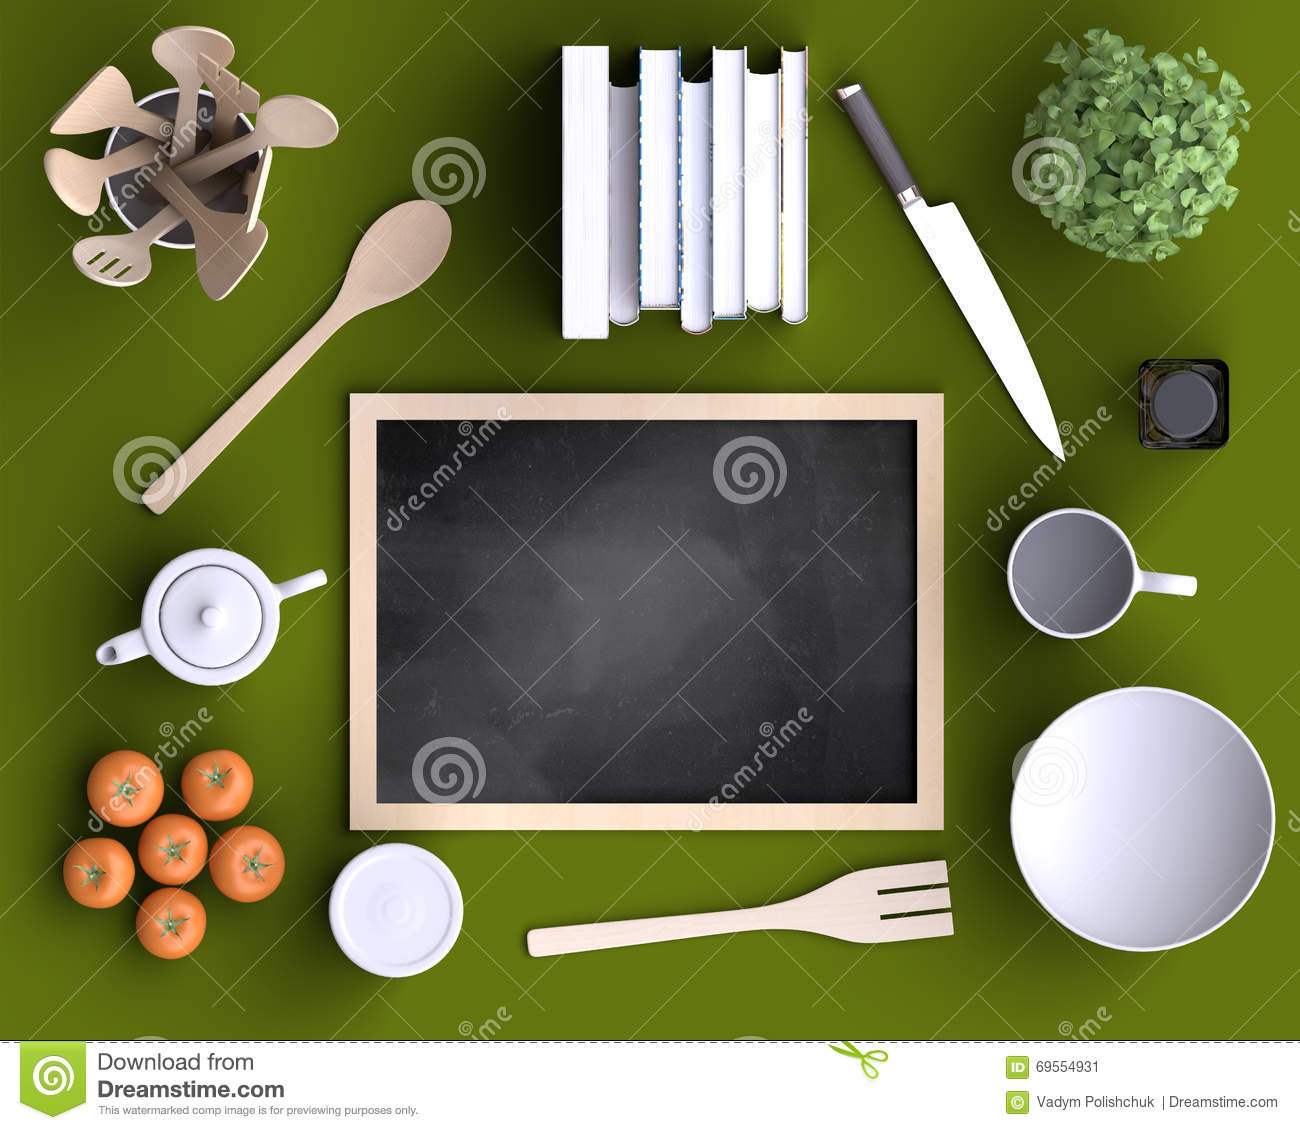 Branding Mock Up Kitchen With Table And Kitchenware Stock Illustration Image 69554931